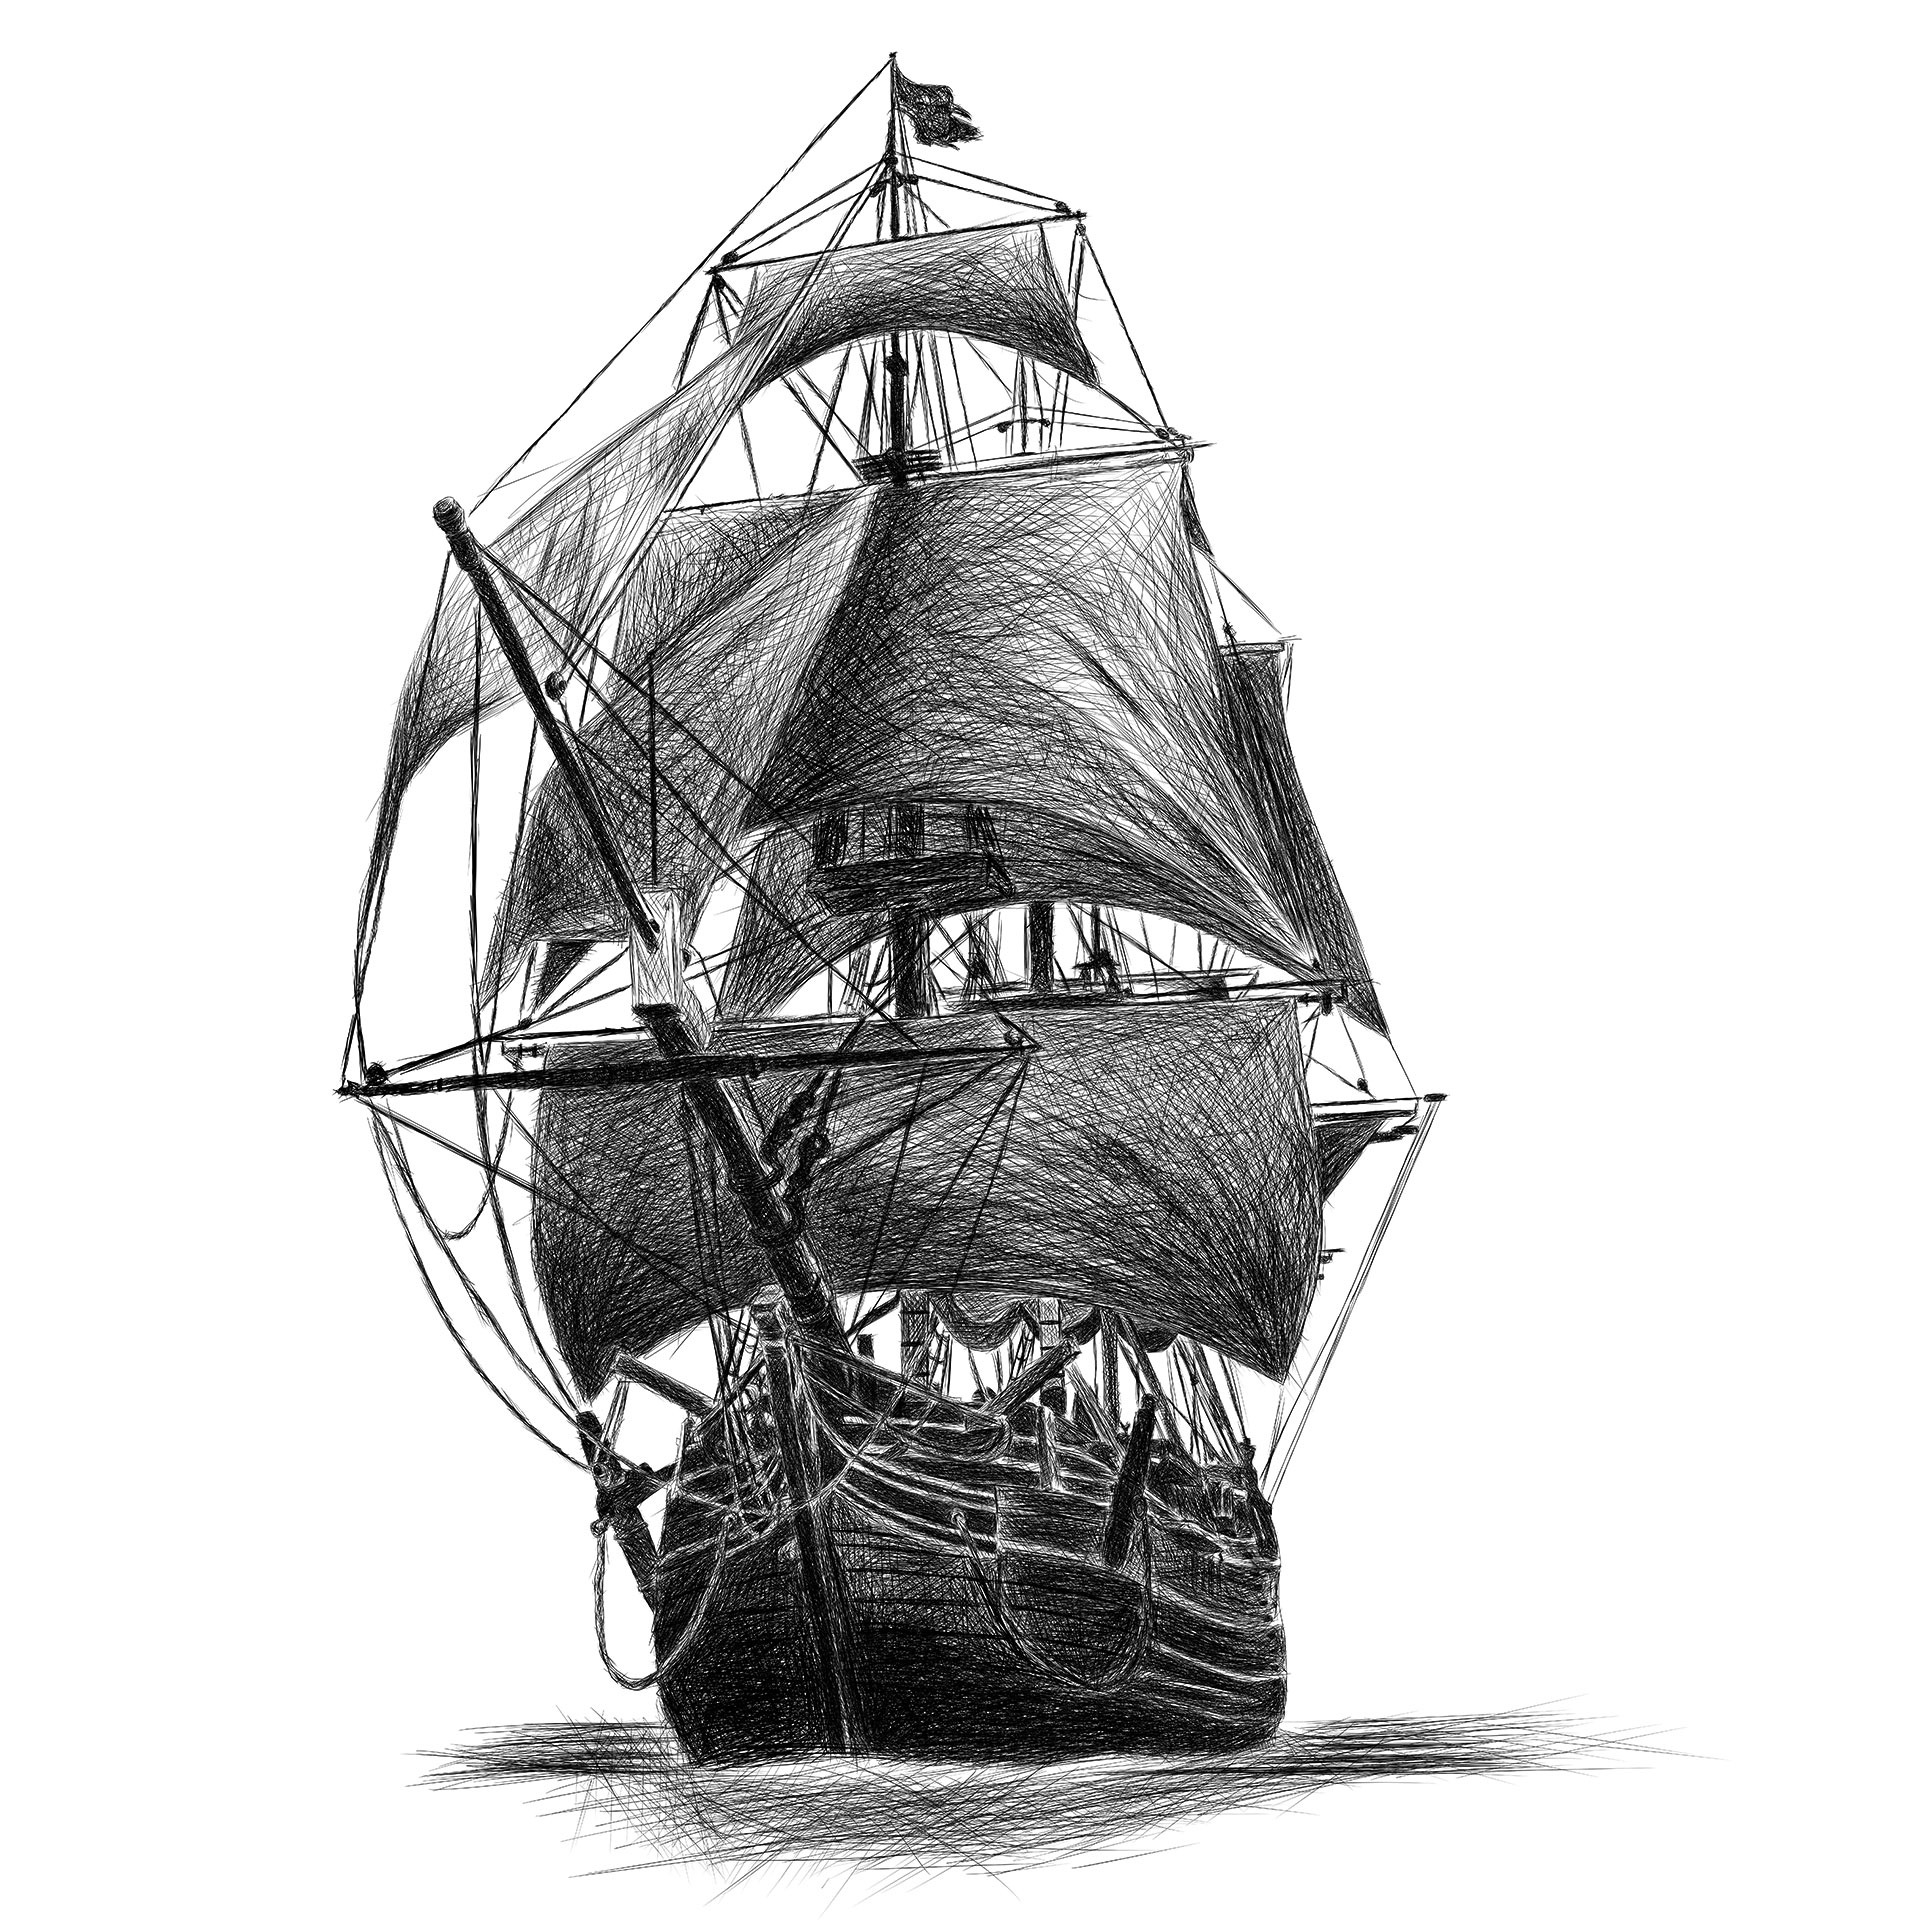 pirate ship drawing pirate ship by winstonscreator on deviantart ship drawing pirate